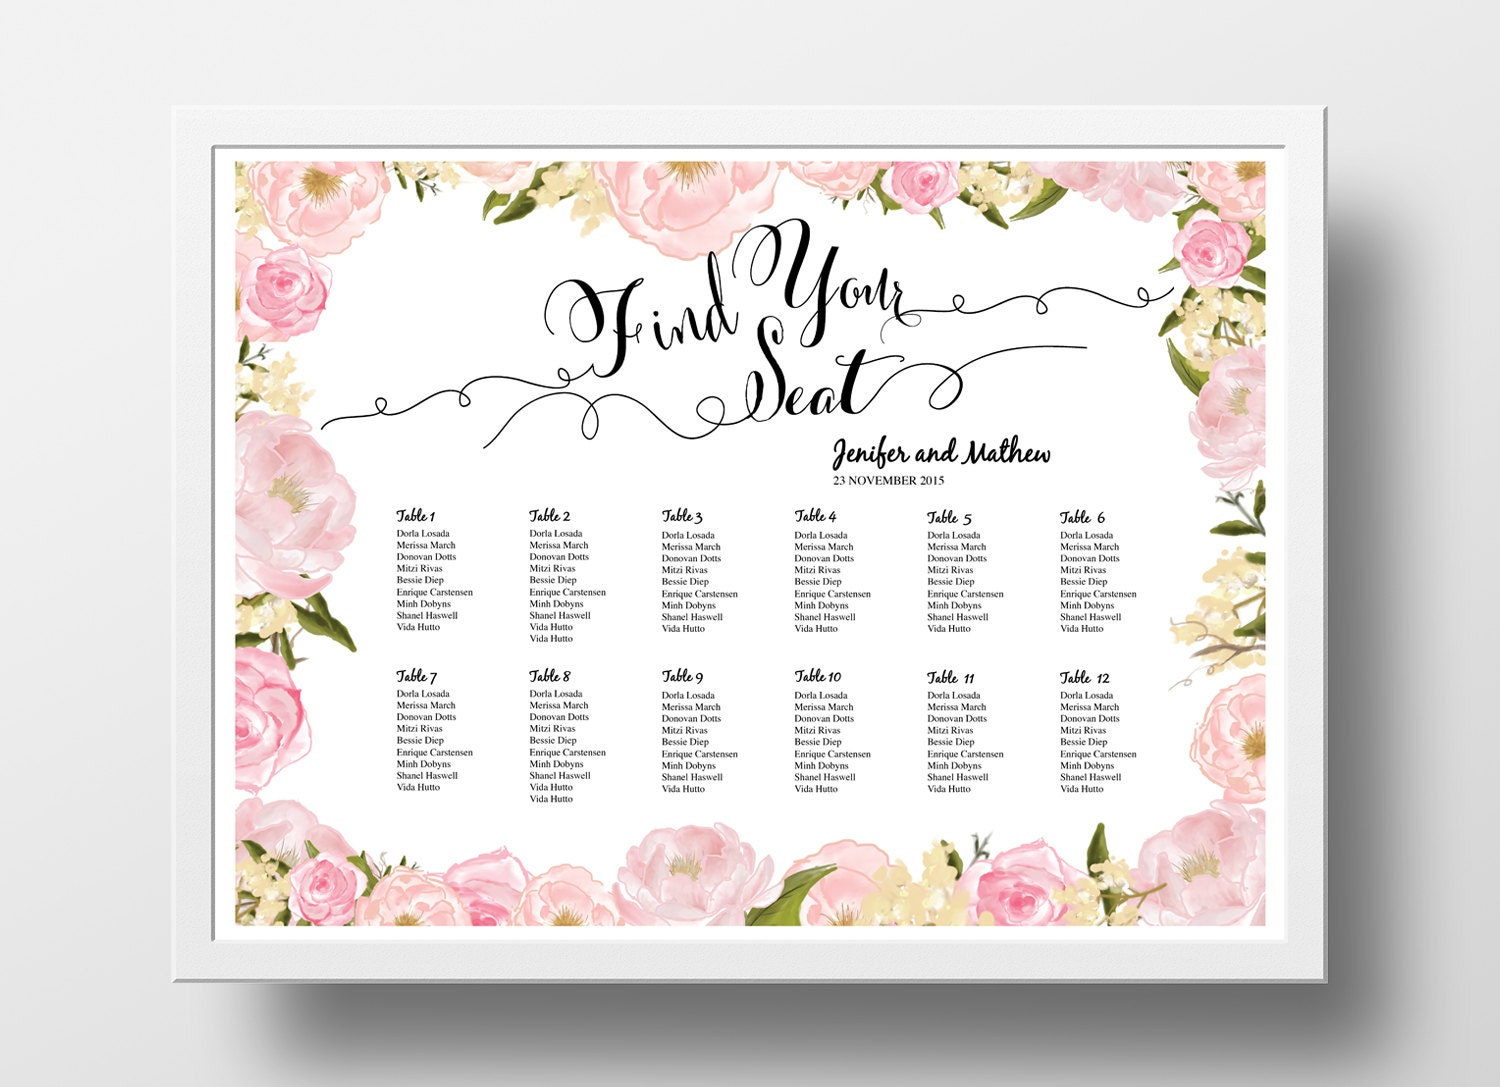 Wedding Seating Chart Poster Template Wedding Table by xoBSpoke